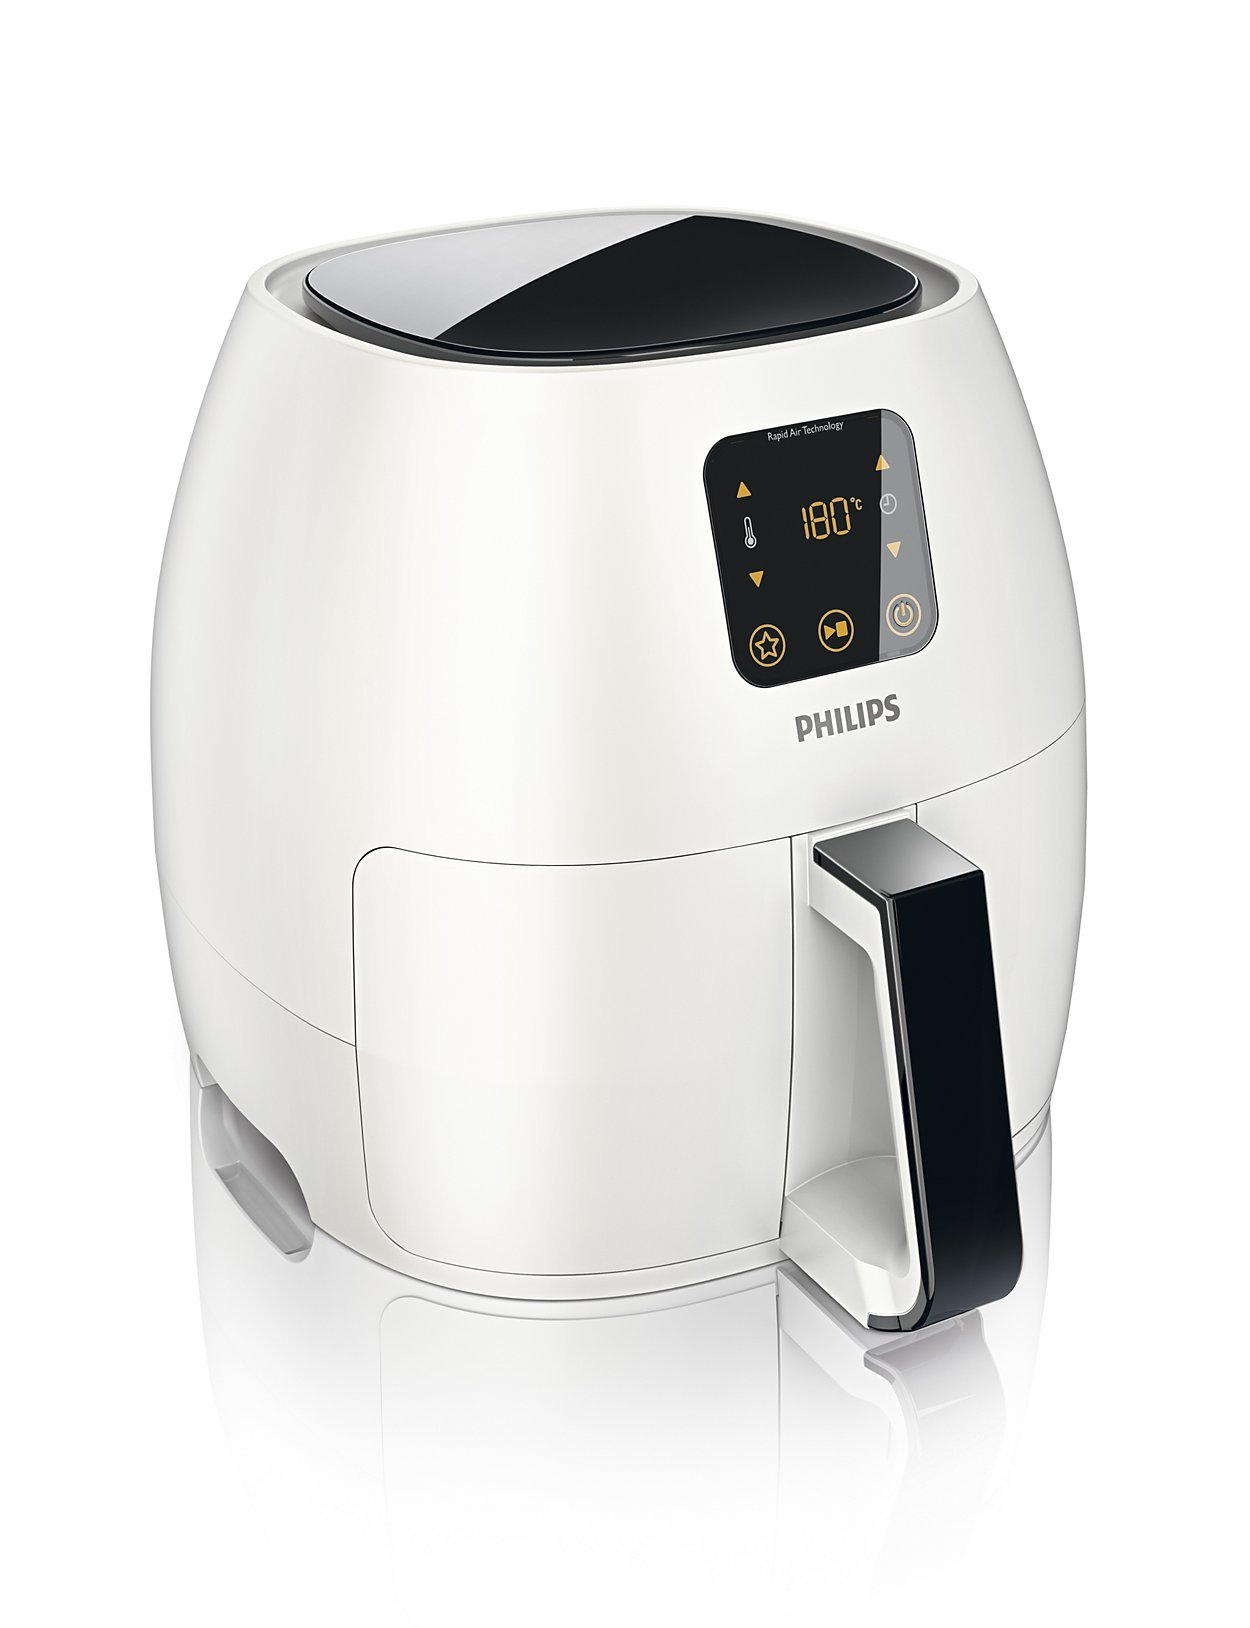 Philips HD9240/34 Avance Digital AirFryer XL with Rapid Air Technology White (Certified Refurbished) by Philips (Image #2)